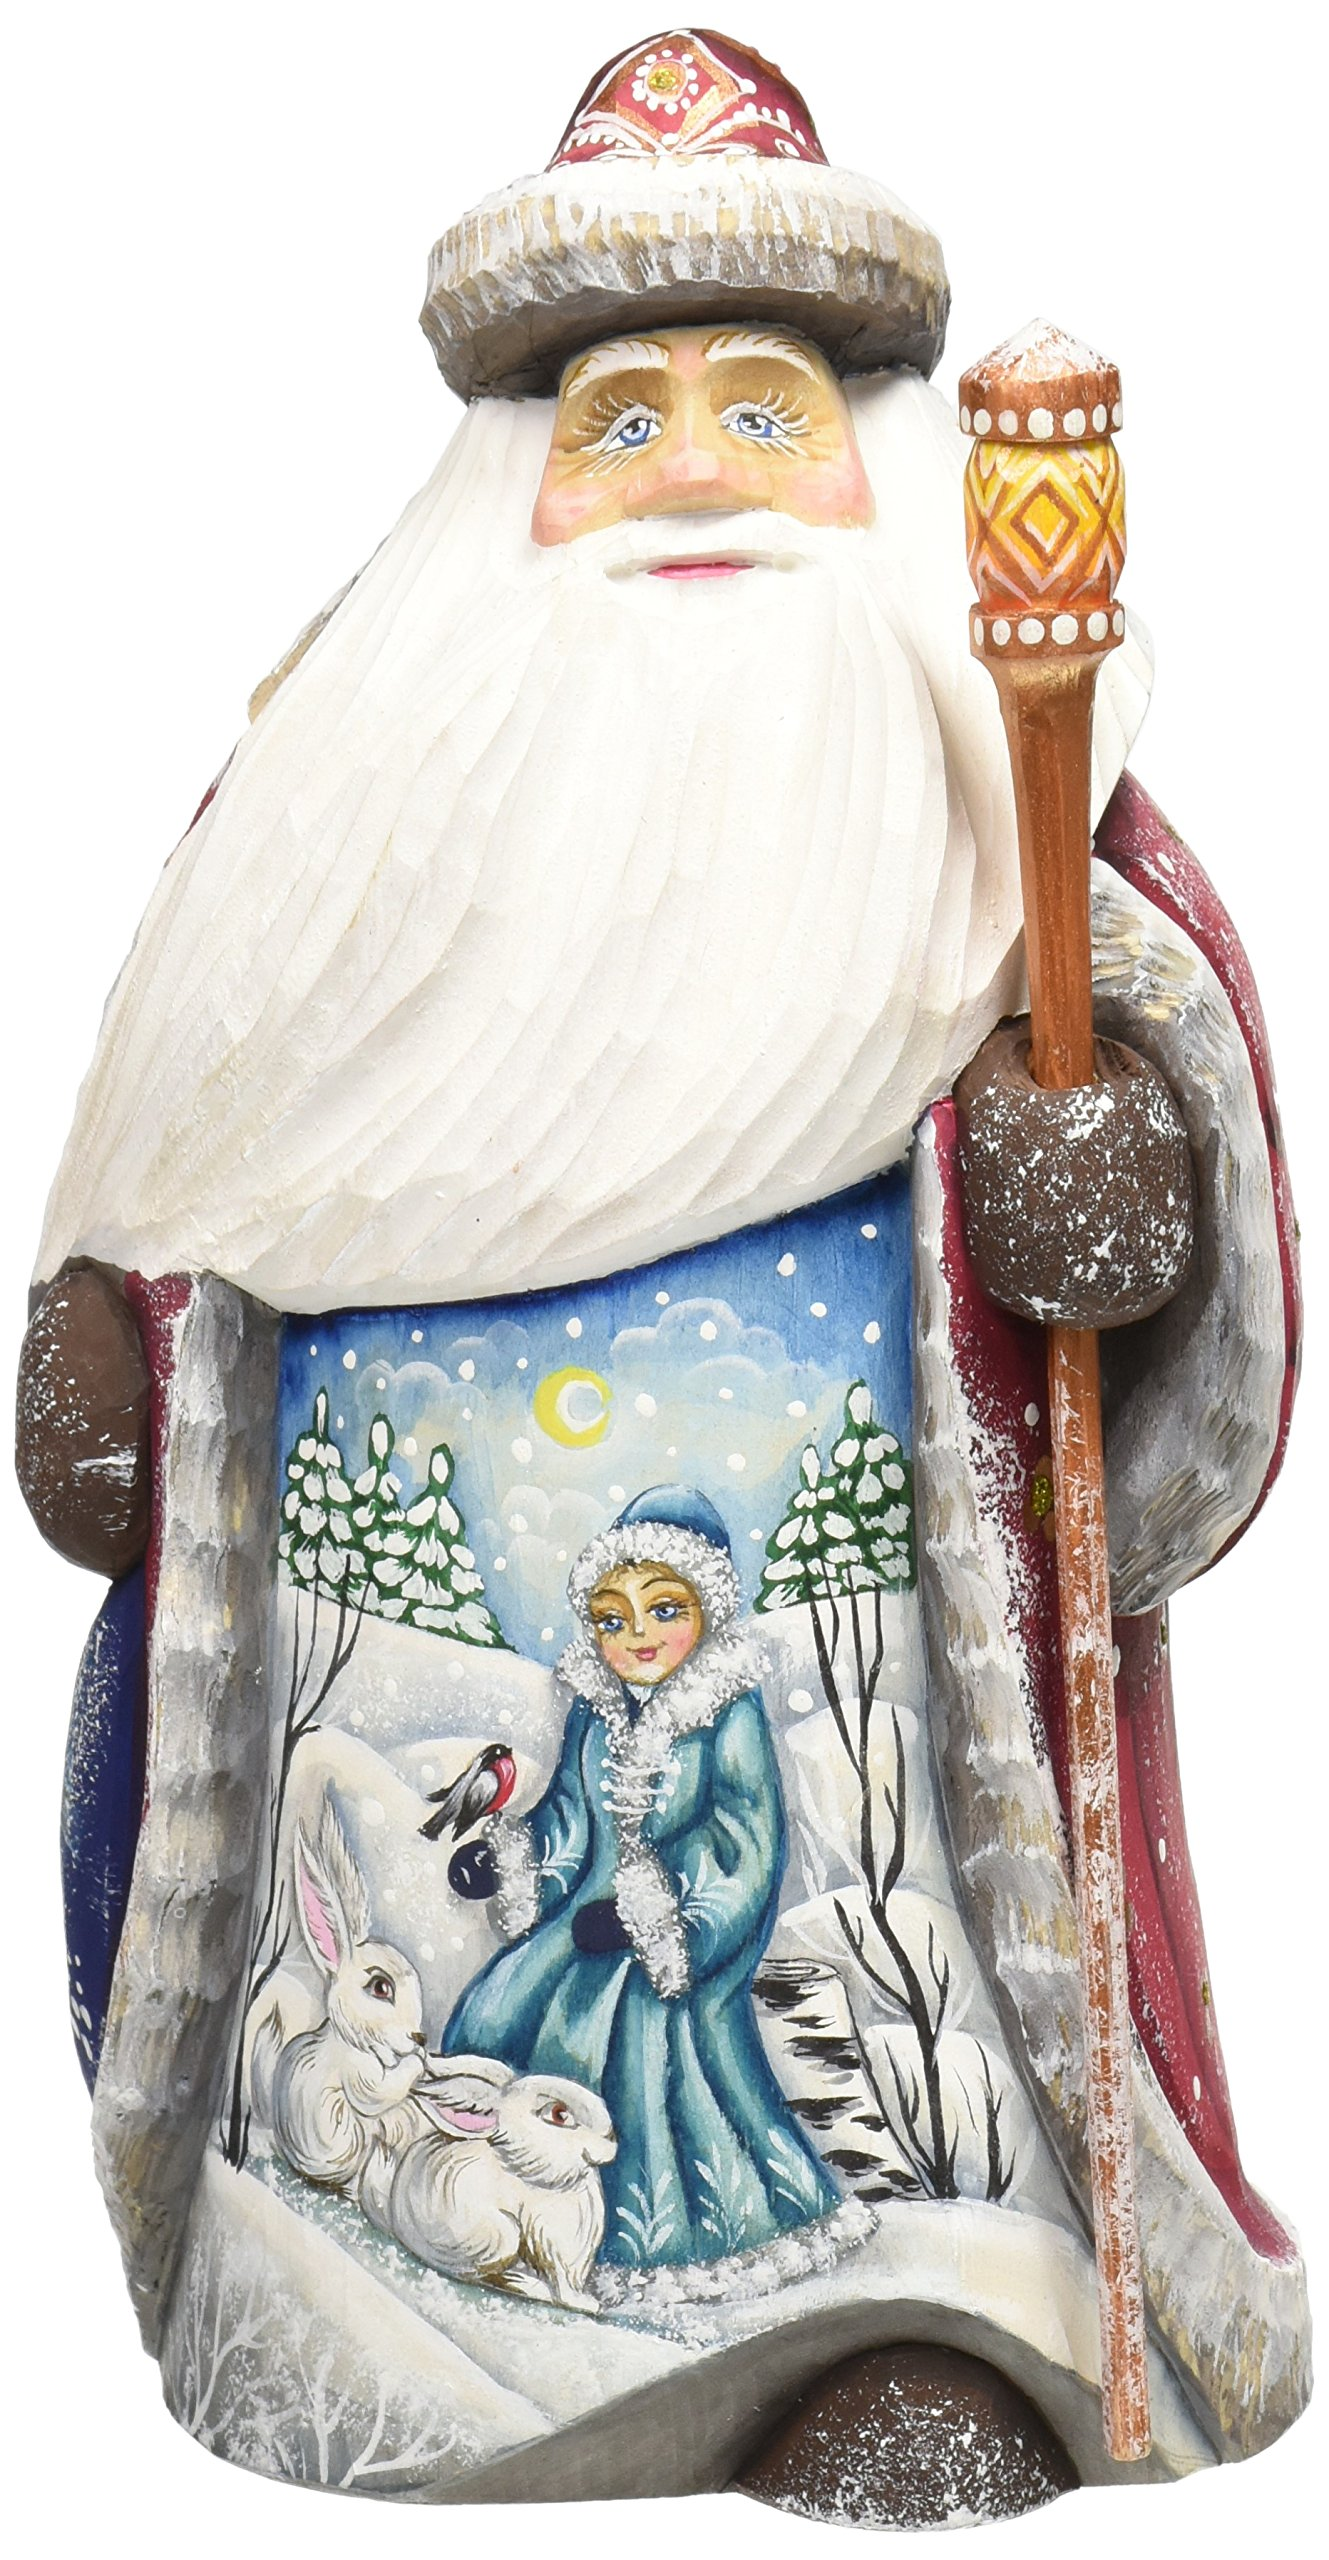 G. Debrekht Snow Mainden with Bunny Santa Hand-Painted Wood Carving